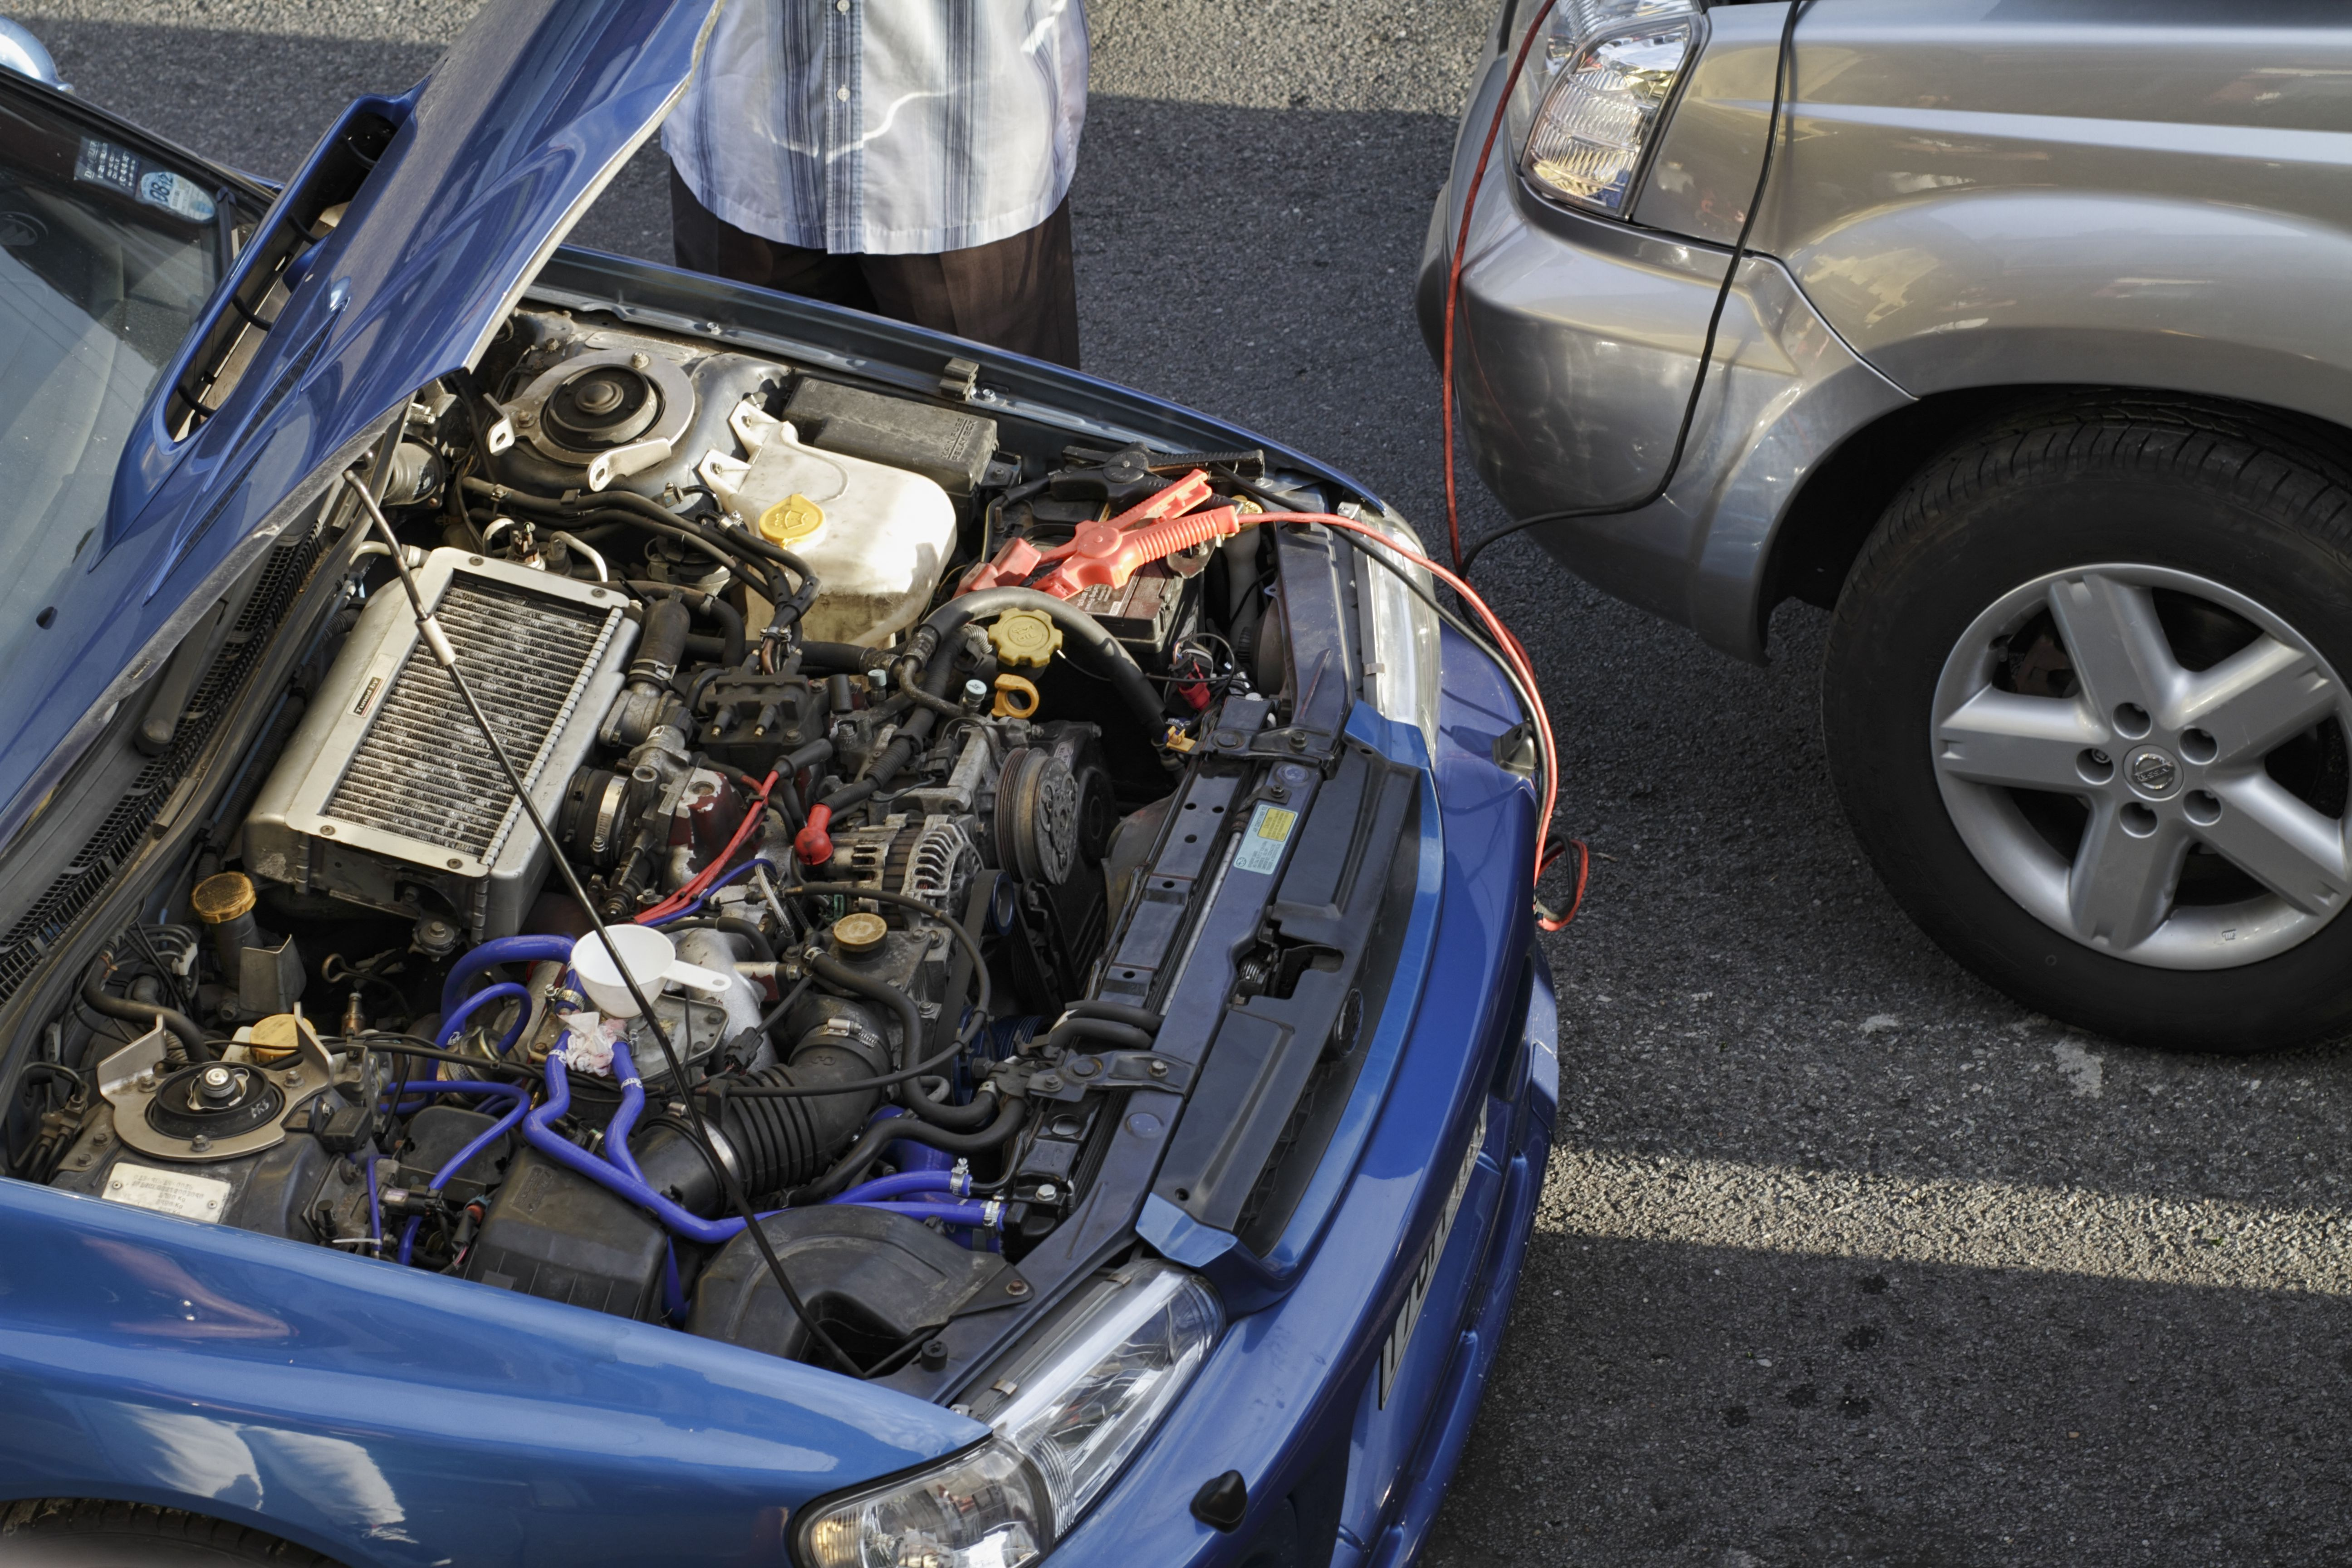 How to Start a Car That Has Been in Storage